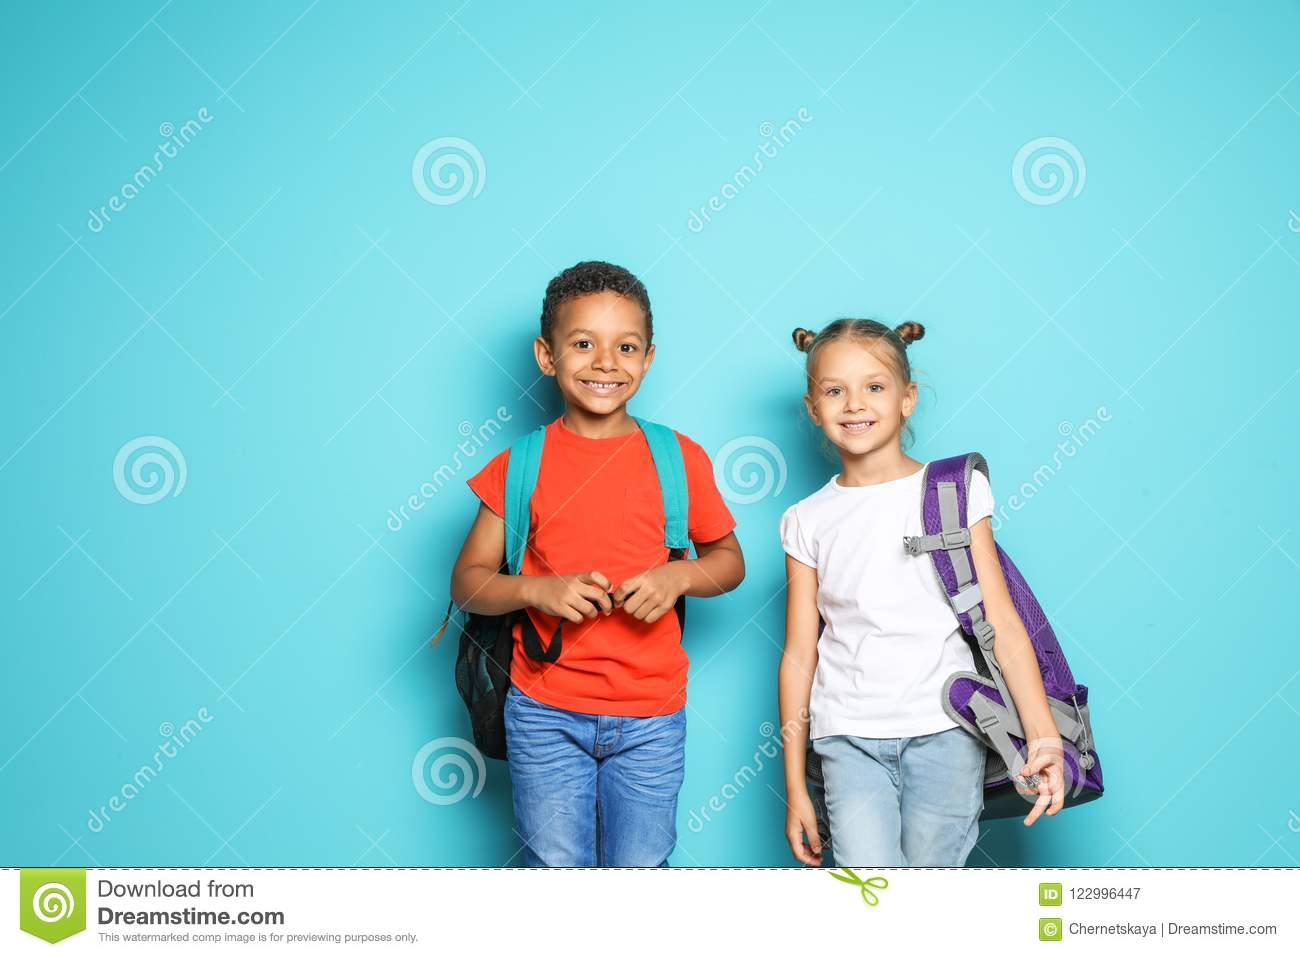 a2e8b61970 Little School Children With Backpacks Stock Image - Image of little ...